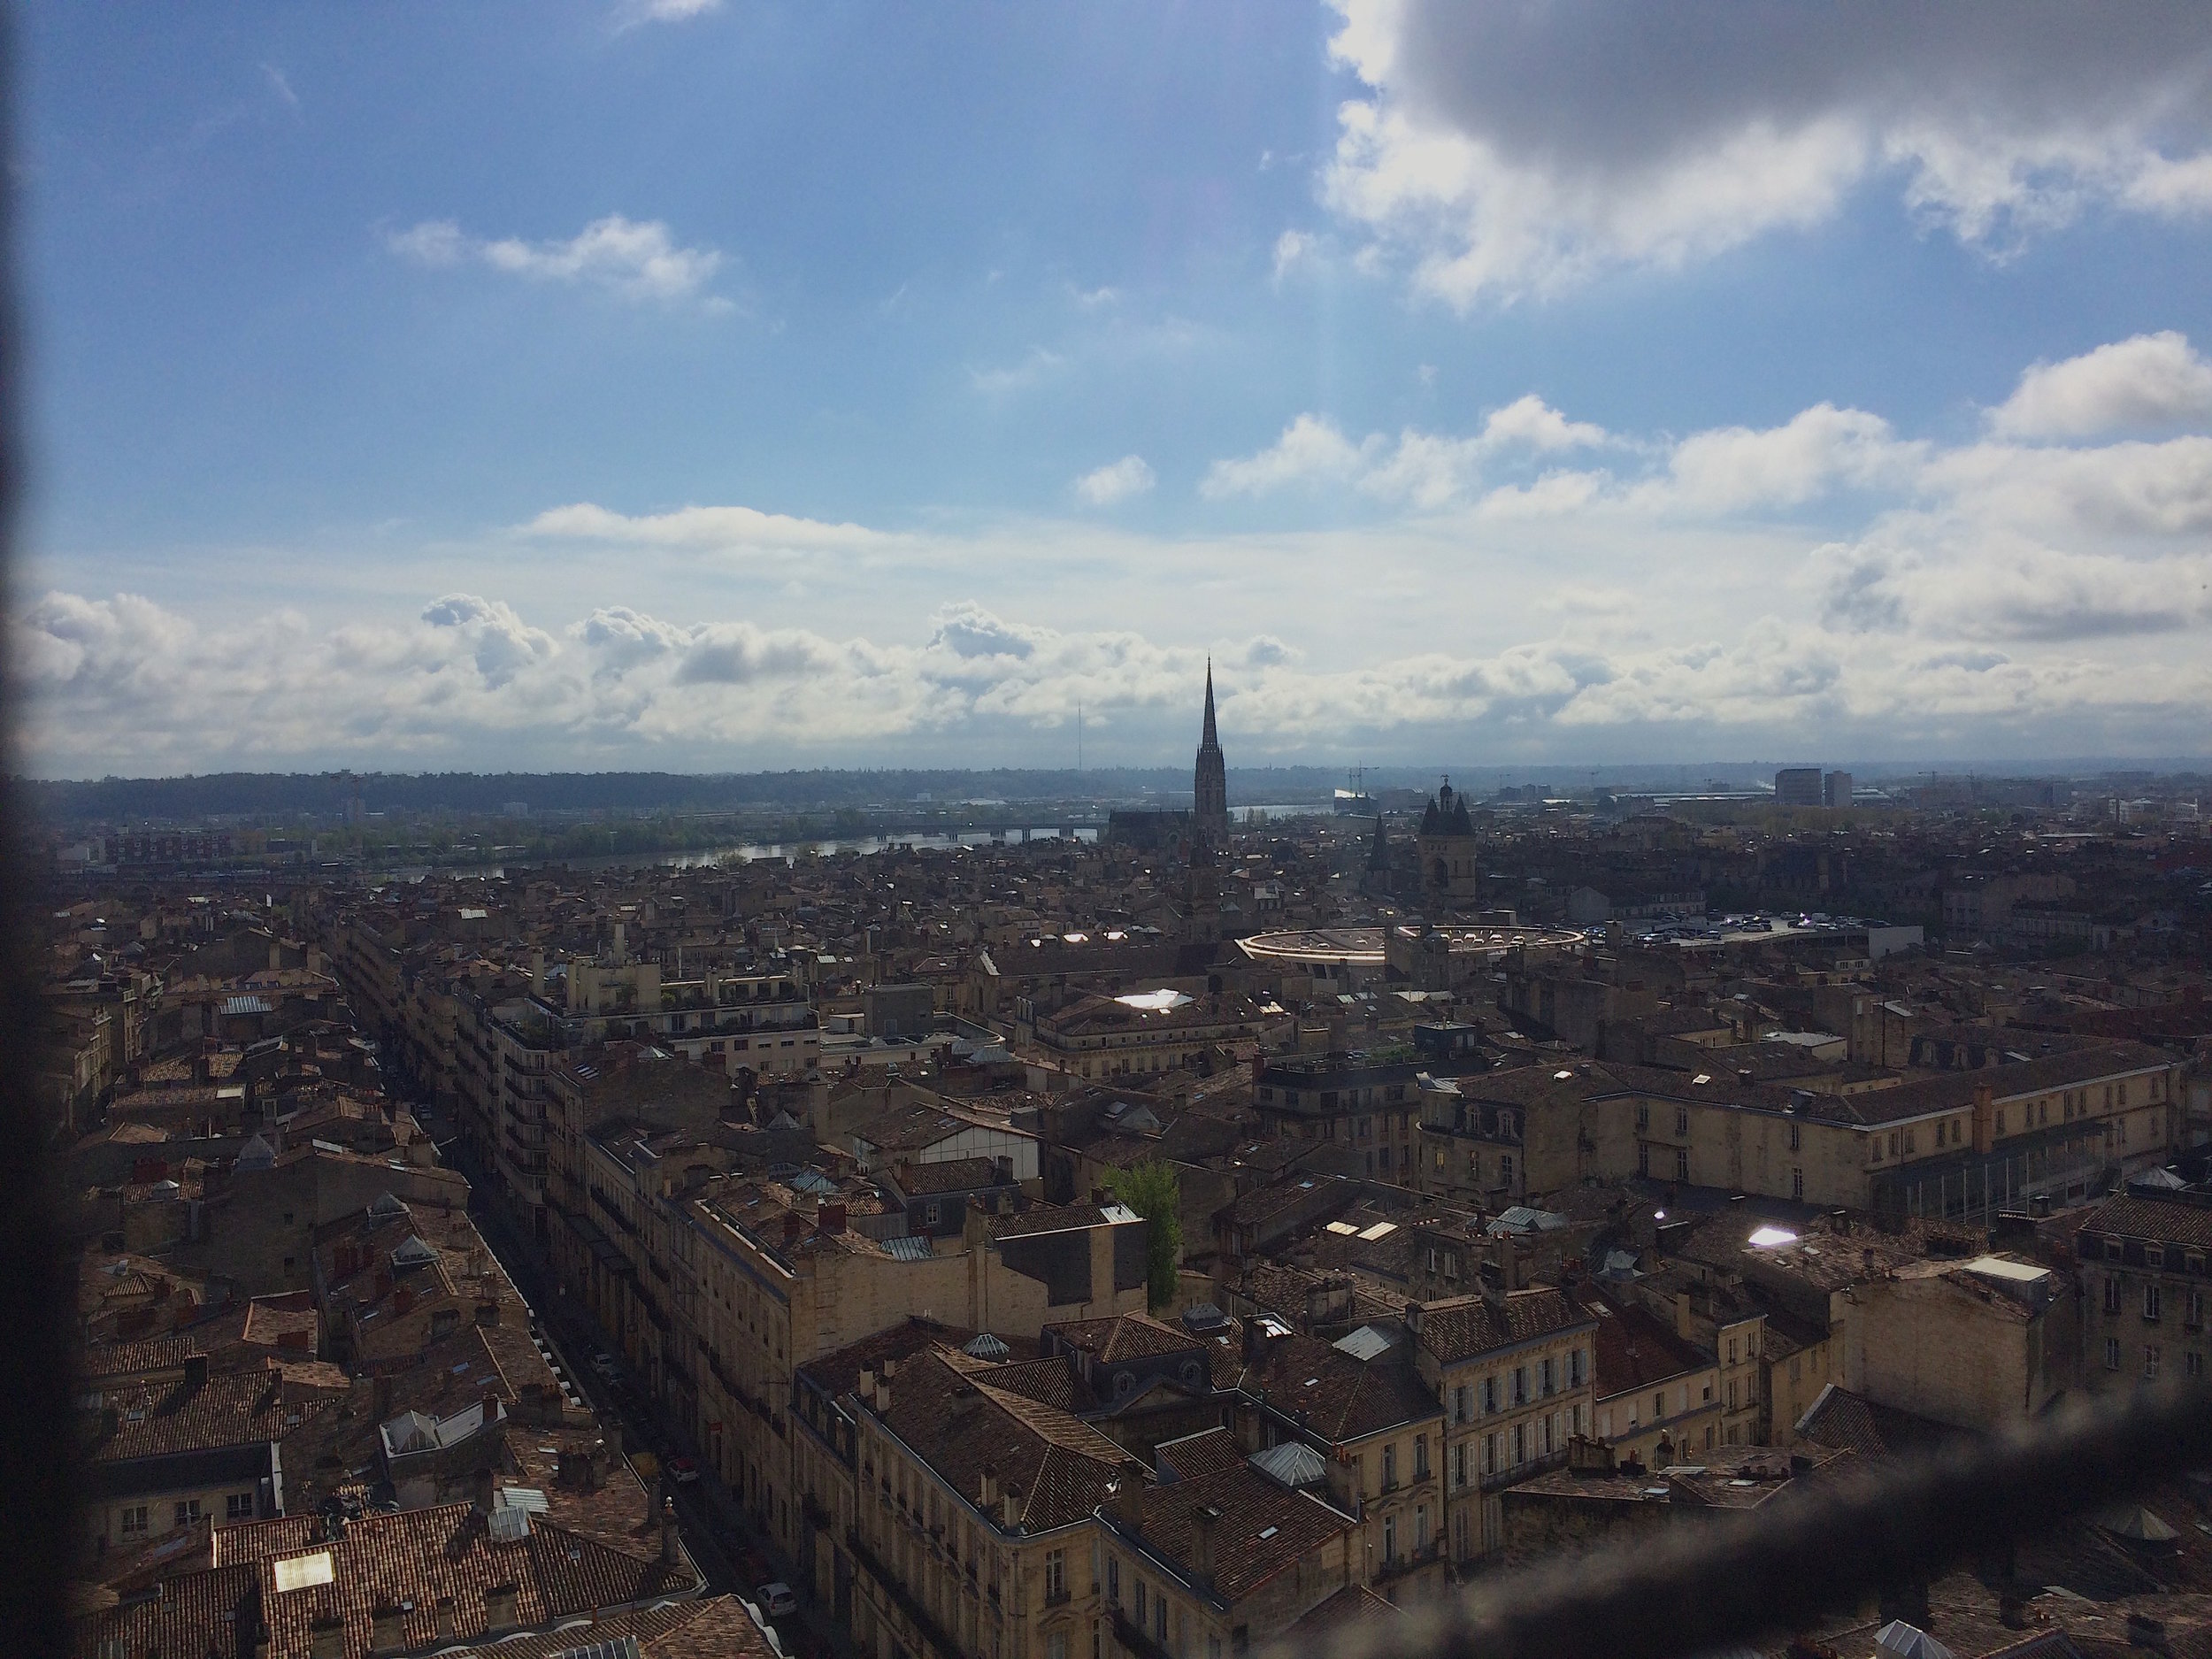 We could see to the river dividing the city, the largest church in Bordeaux, and beyond!